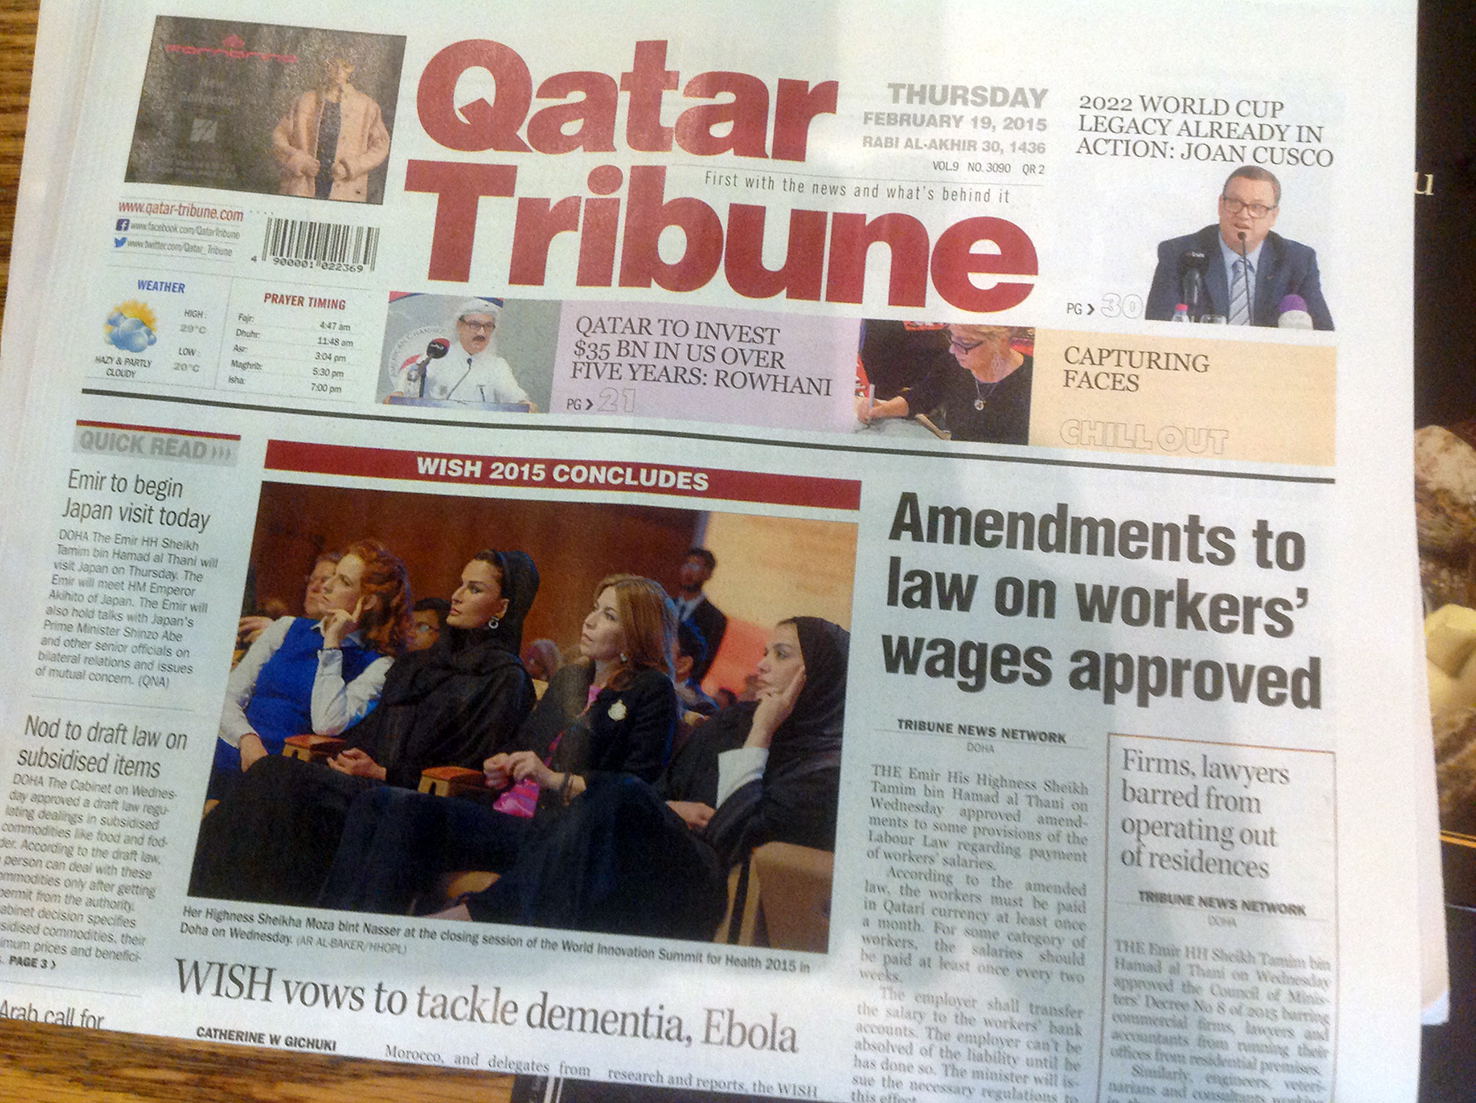 Qatar Tribune cover.jpg